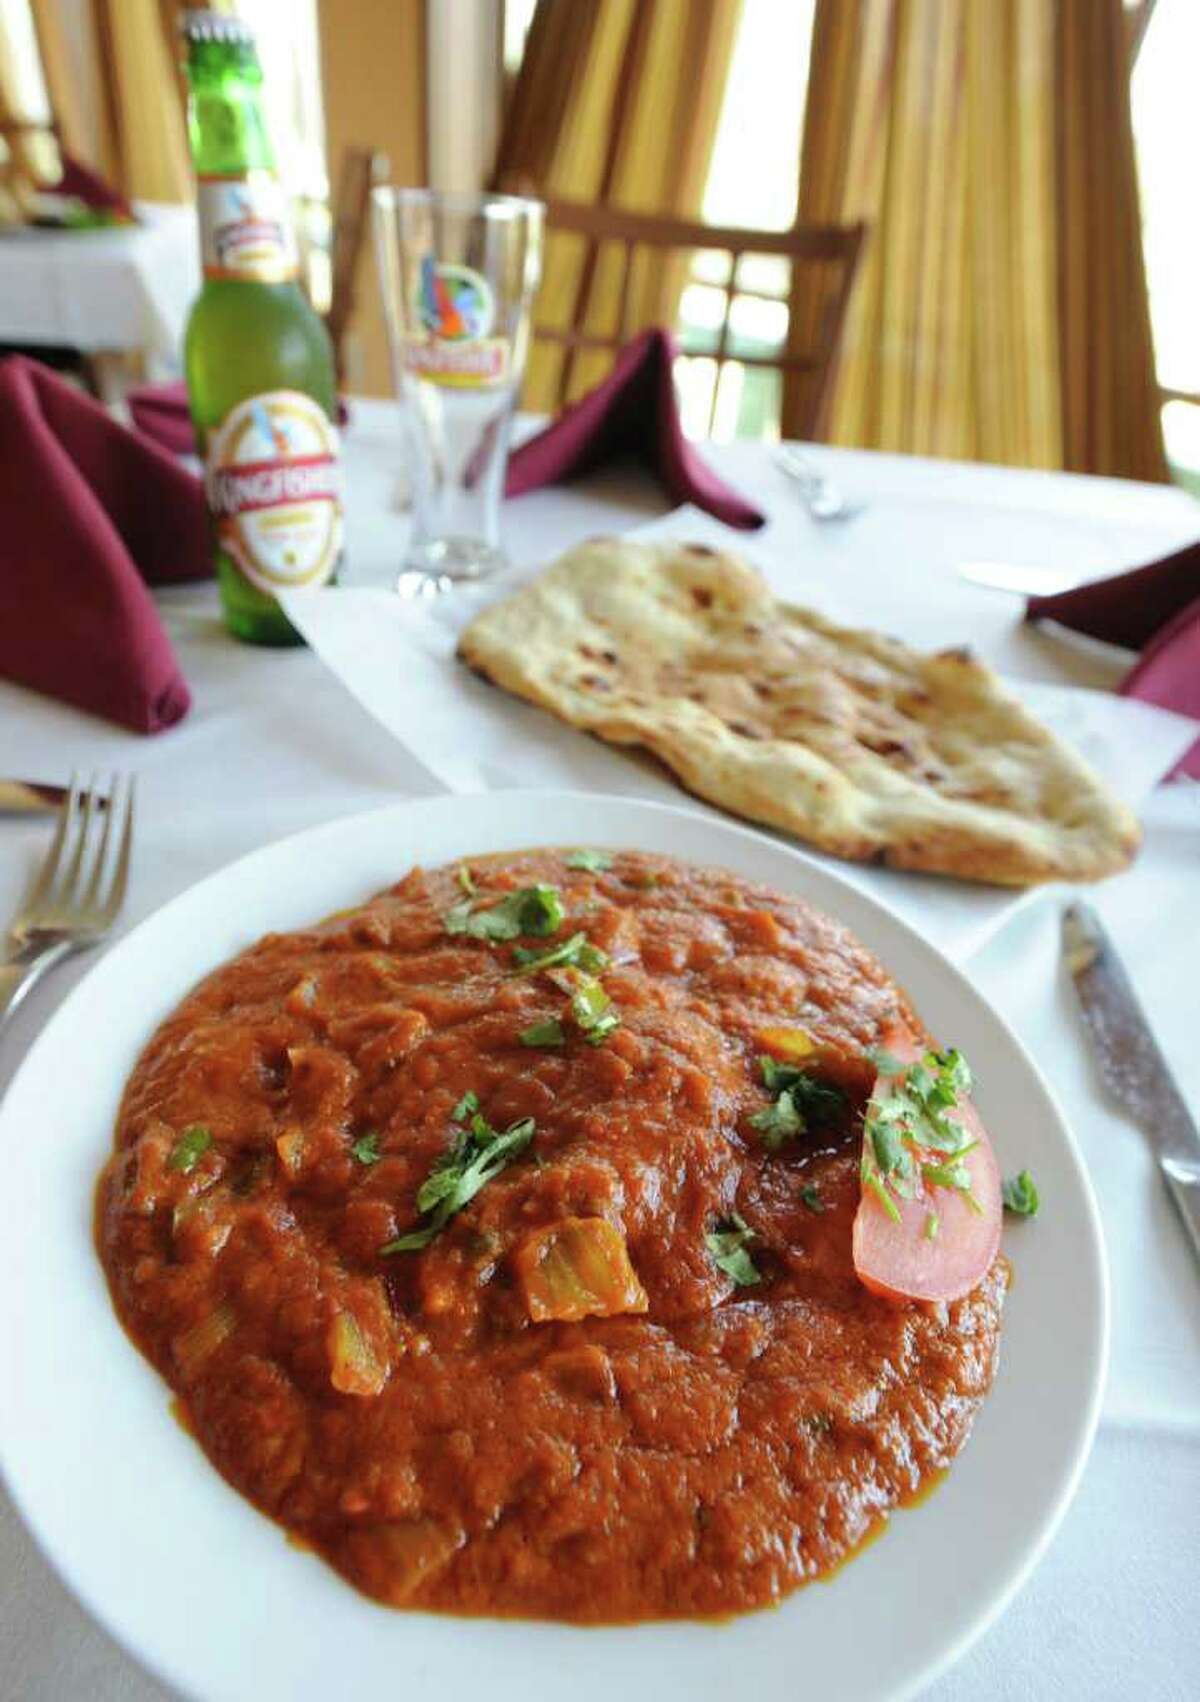 Lamb Jalfrazie with naan at Zaika restaurant on Tuesday March 20, 2012 in Clifton Park, N.Y. (Lori Van Buren / Times Union)